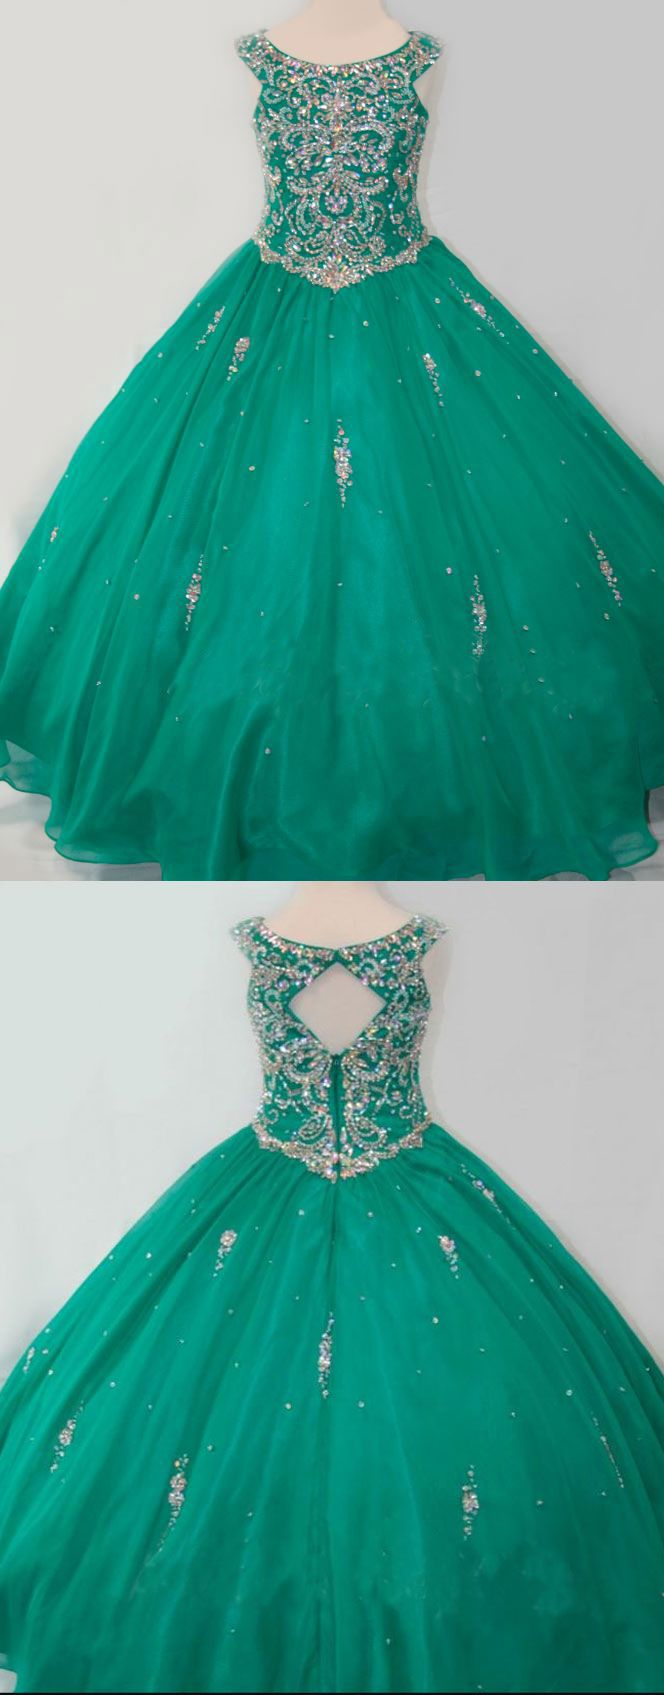 turquoise hunter green pageant dresses, ball gowns pageant dresses, spakly beaded pageant dresses, ball gowns pageant dresses